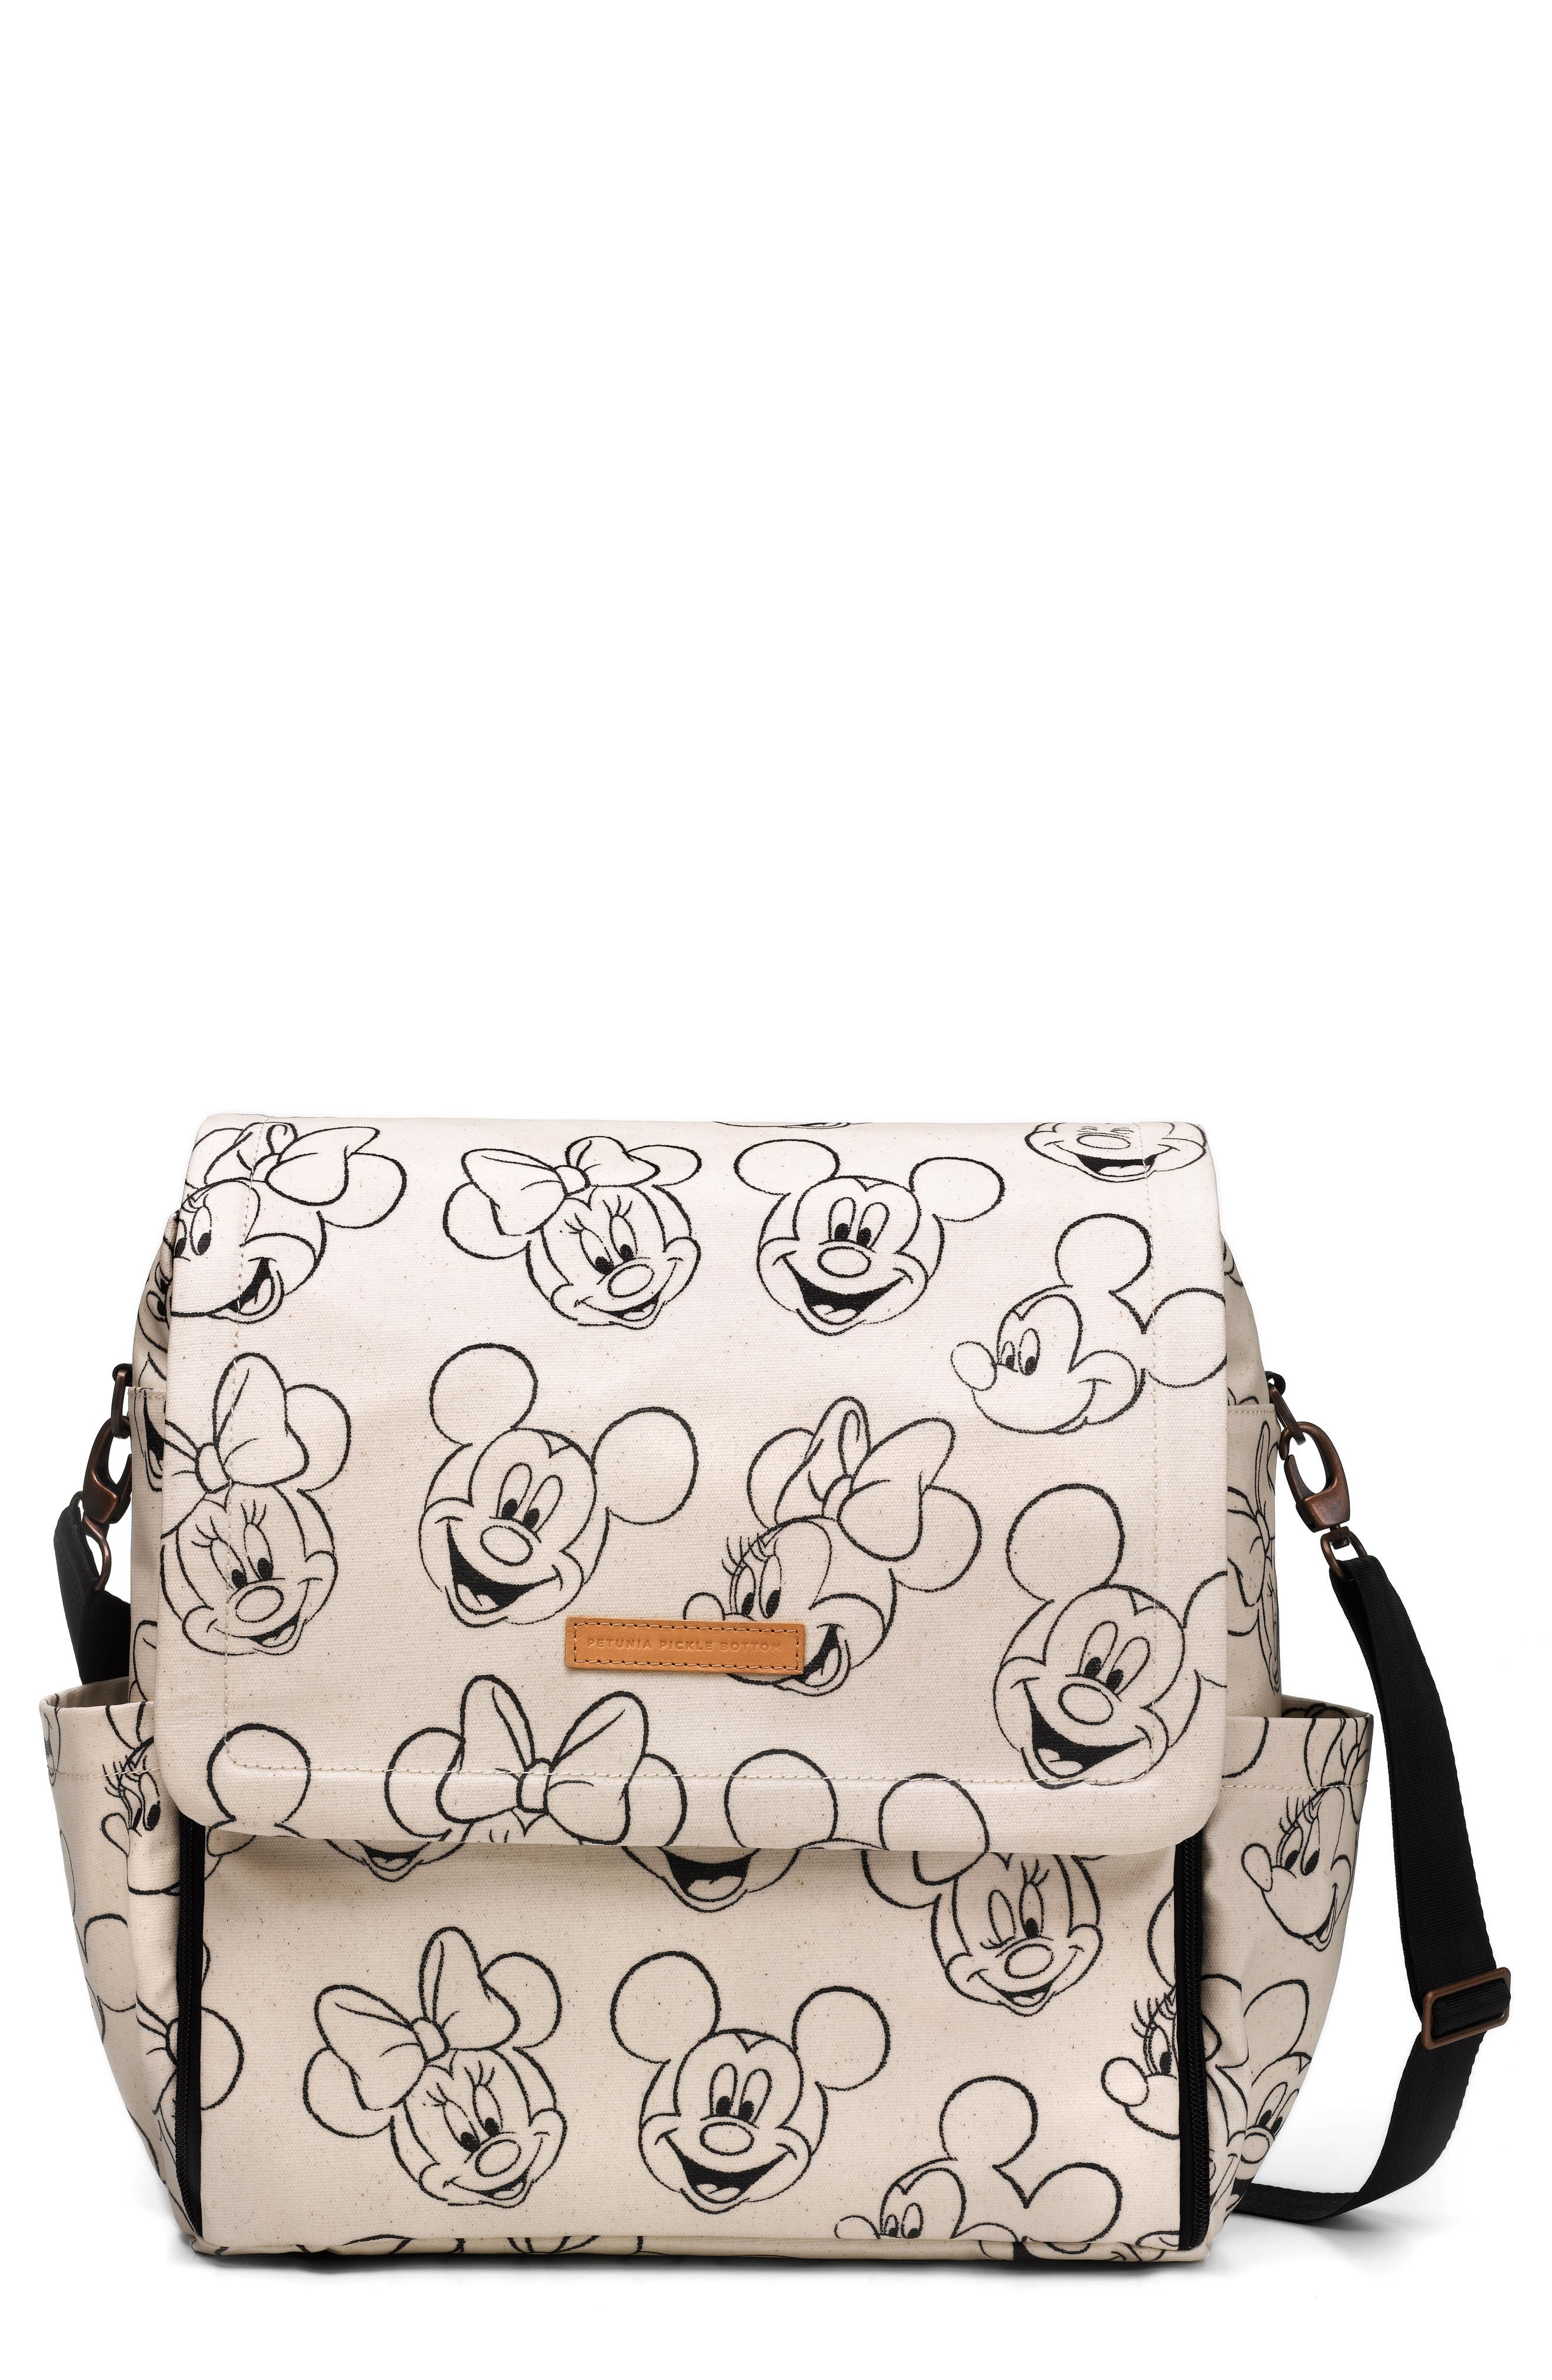 Boxy Backpack - Disney Diaper Bag,                         Main,                         color, Sketchbook